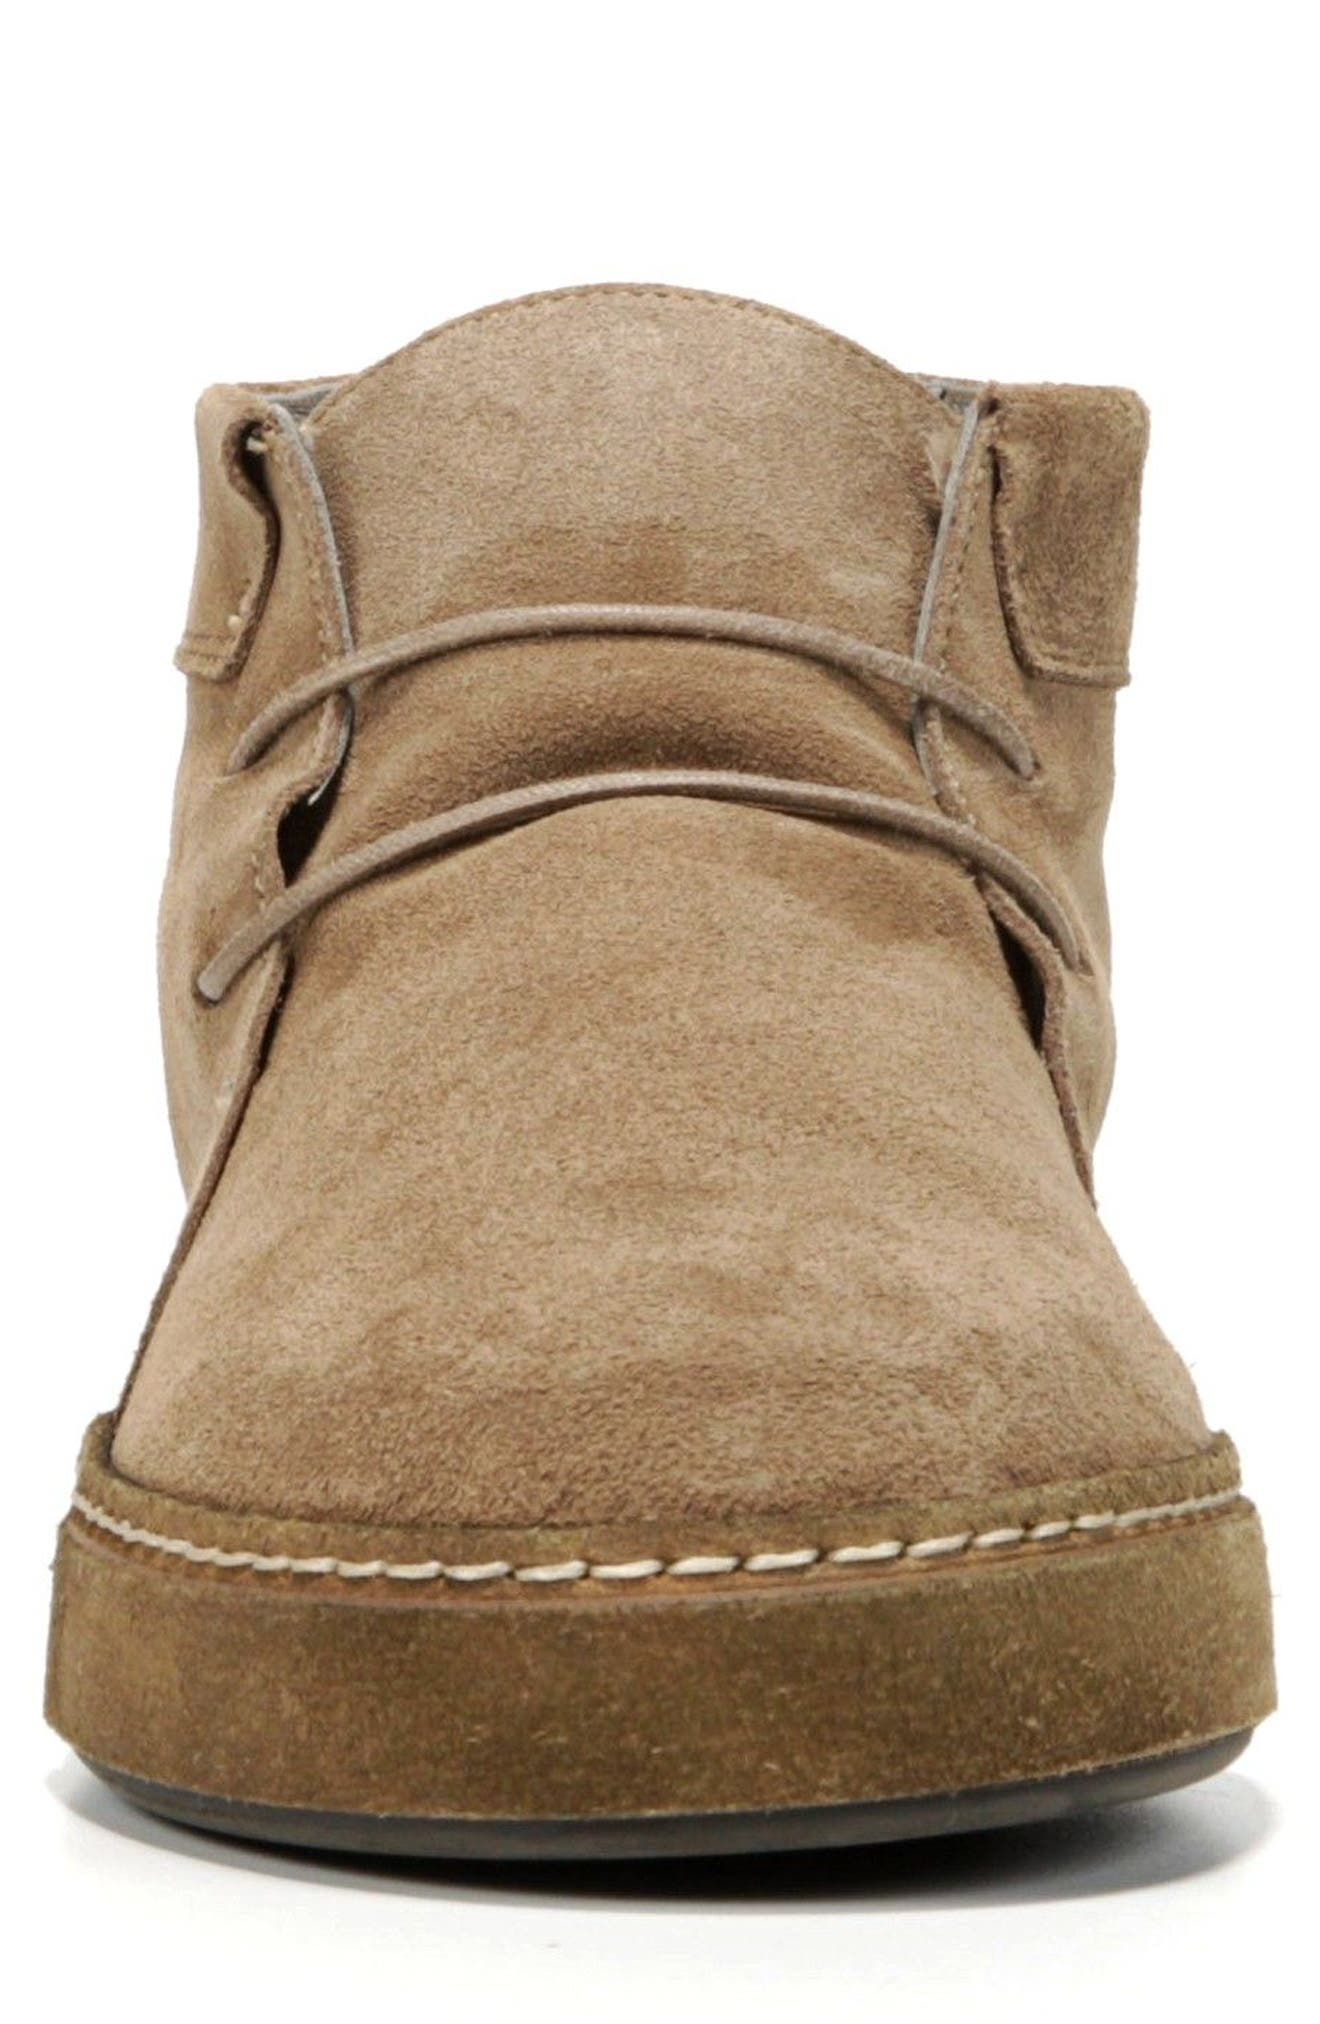 Novato Chukka Boot,                             Alternate thumbnail 4, color,                             Flint Suede